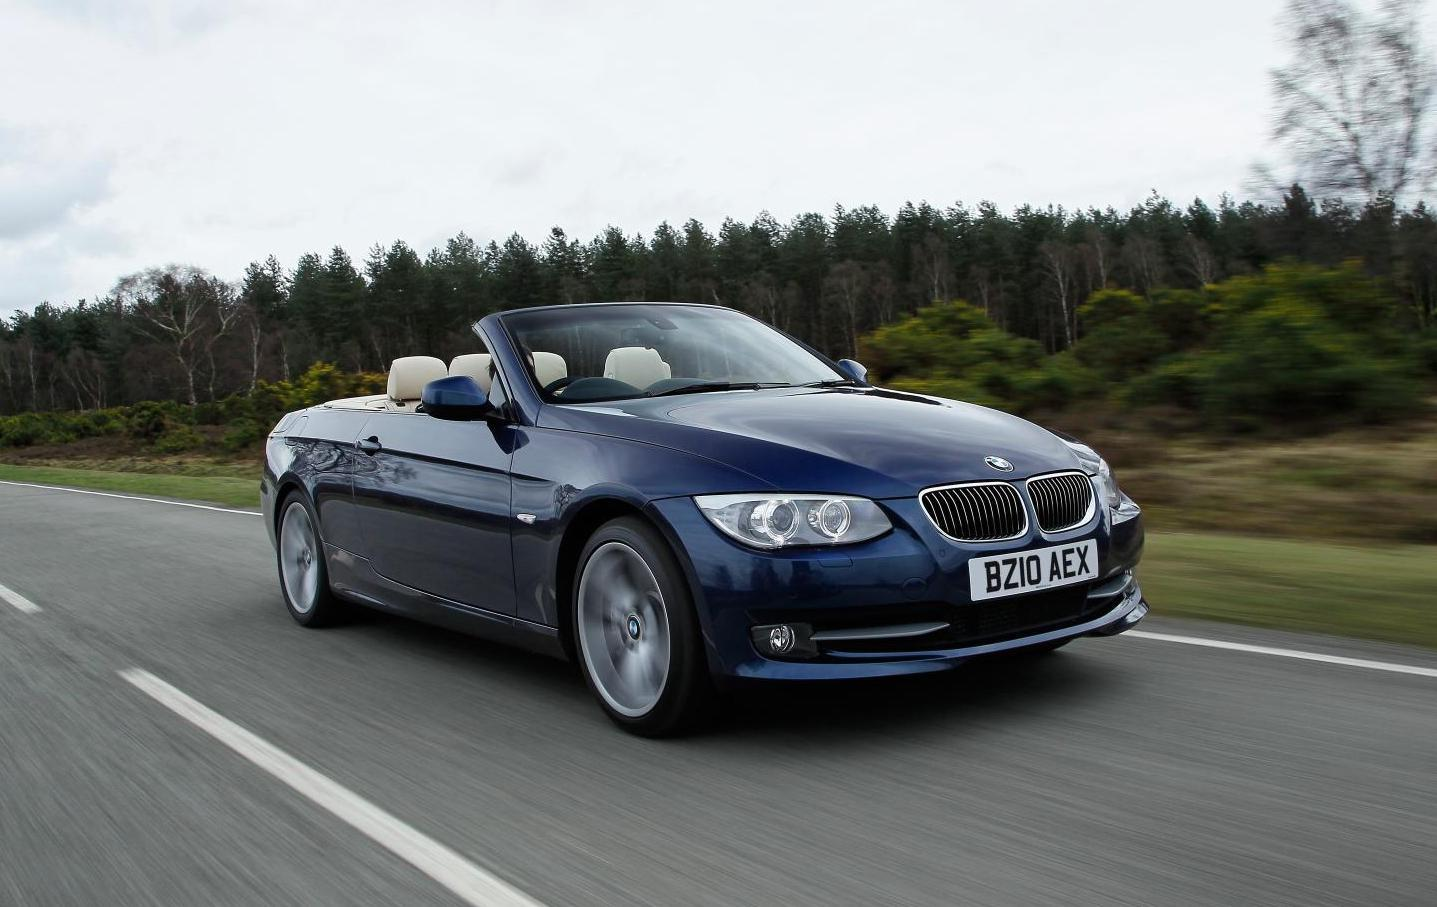 The 3 Series Convertible features a range of efficient yet powerful engines.